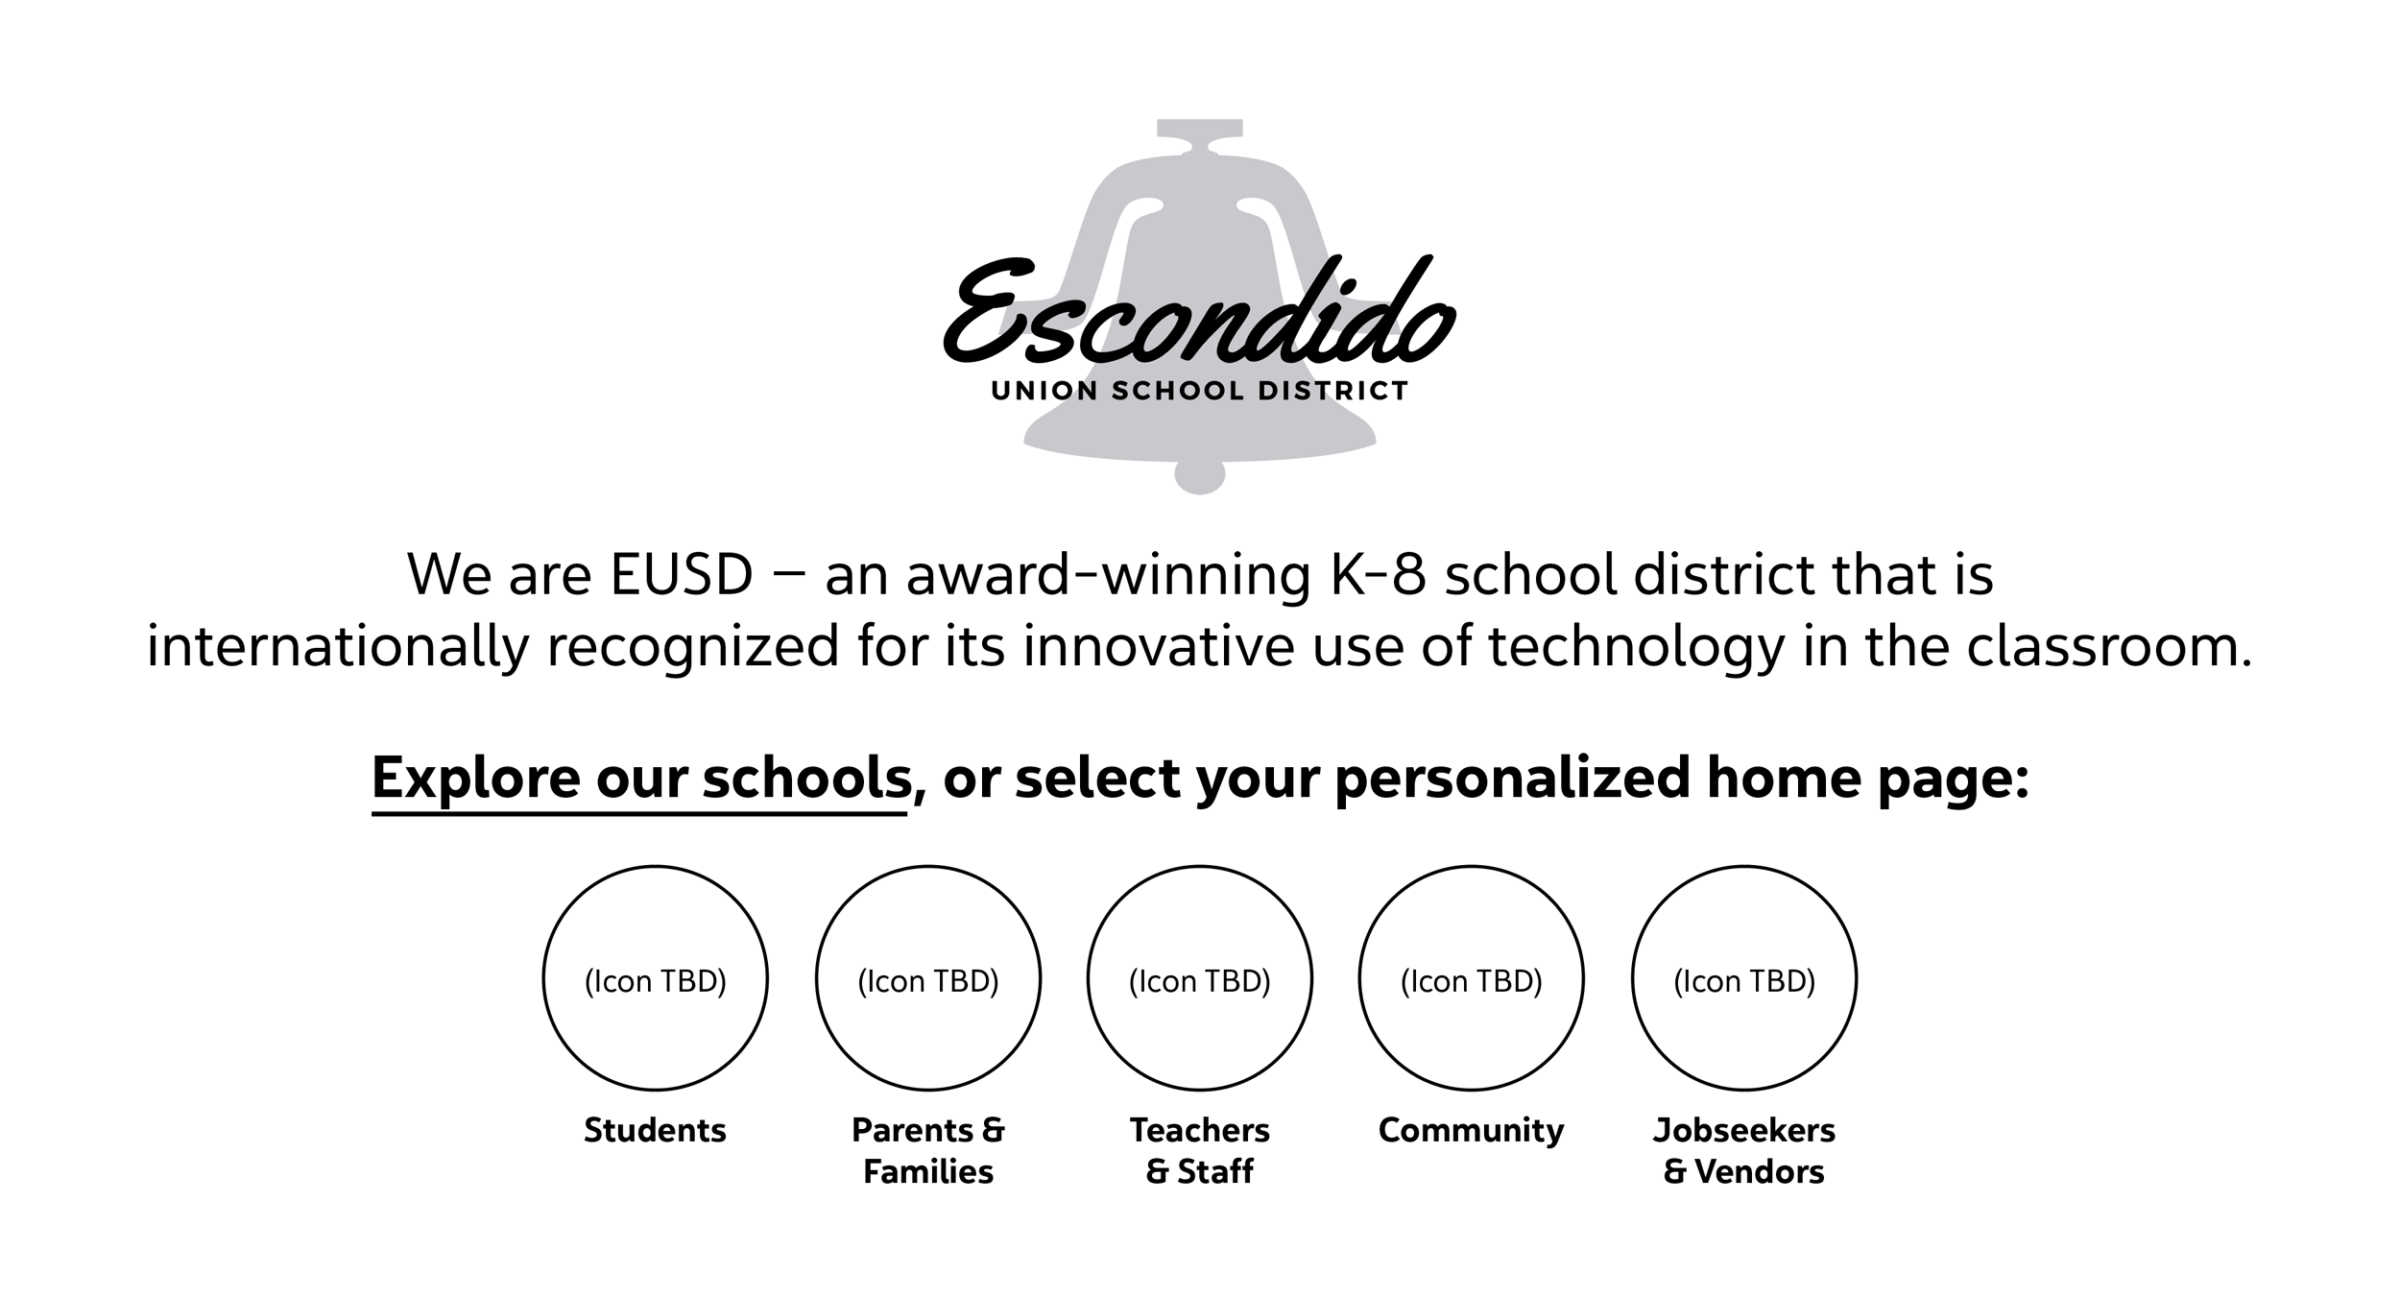 The main home page wireframe with the EUSD logo & marketing sentence at top & 5 audience buttons below.